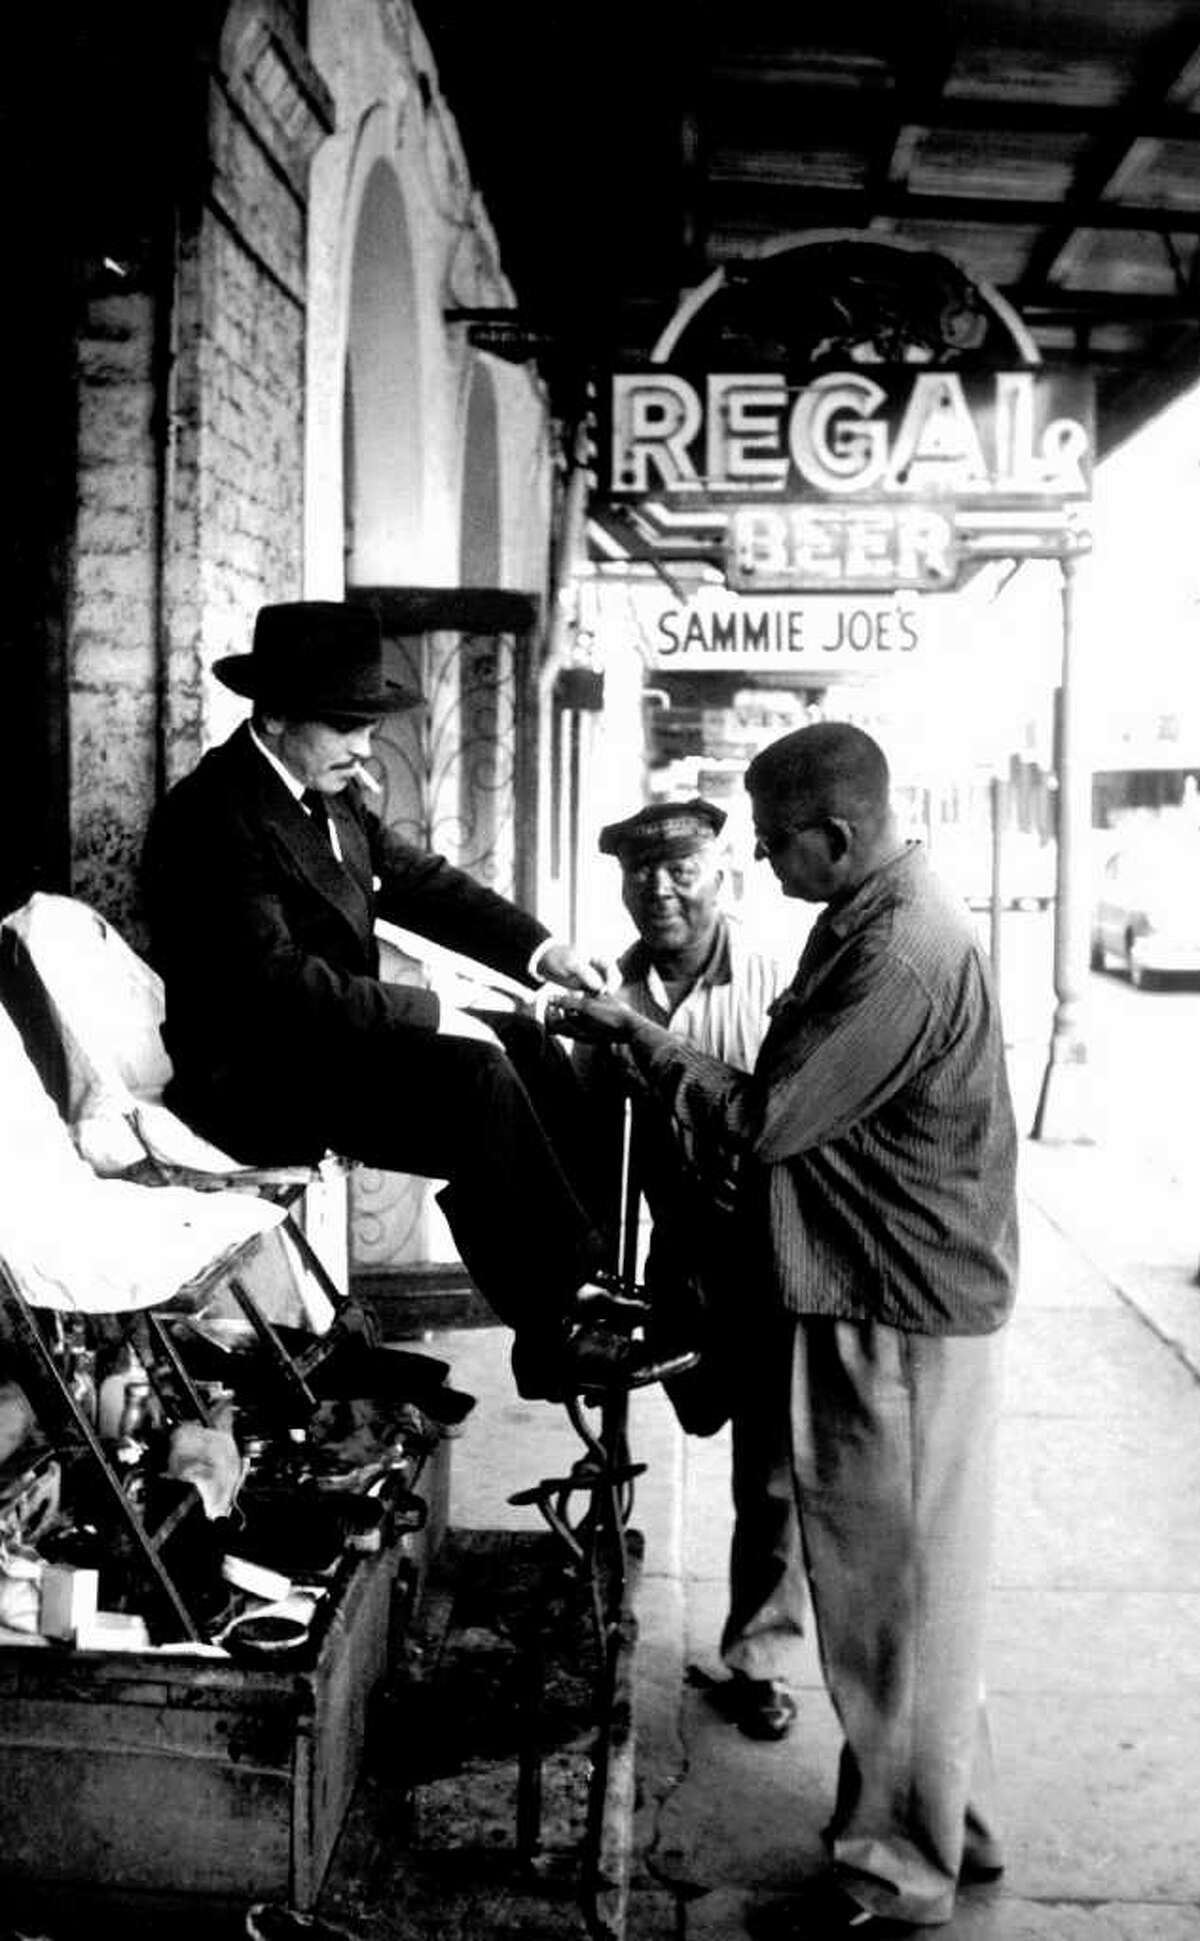 John Howard Griffin, right, collects money from a patron at a shoeshine stand belonging to Sterling Williams, center, where he worked for a few days in November 1959. (Appears in Griffin's book, Black Like Me)